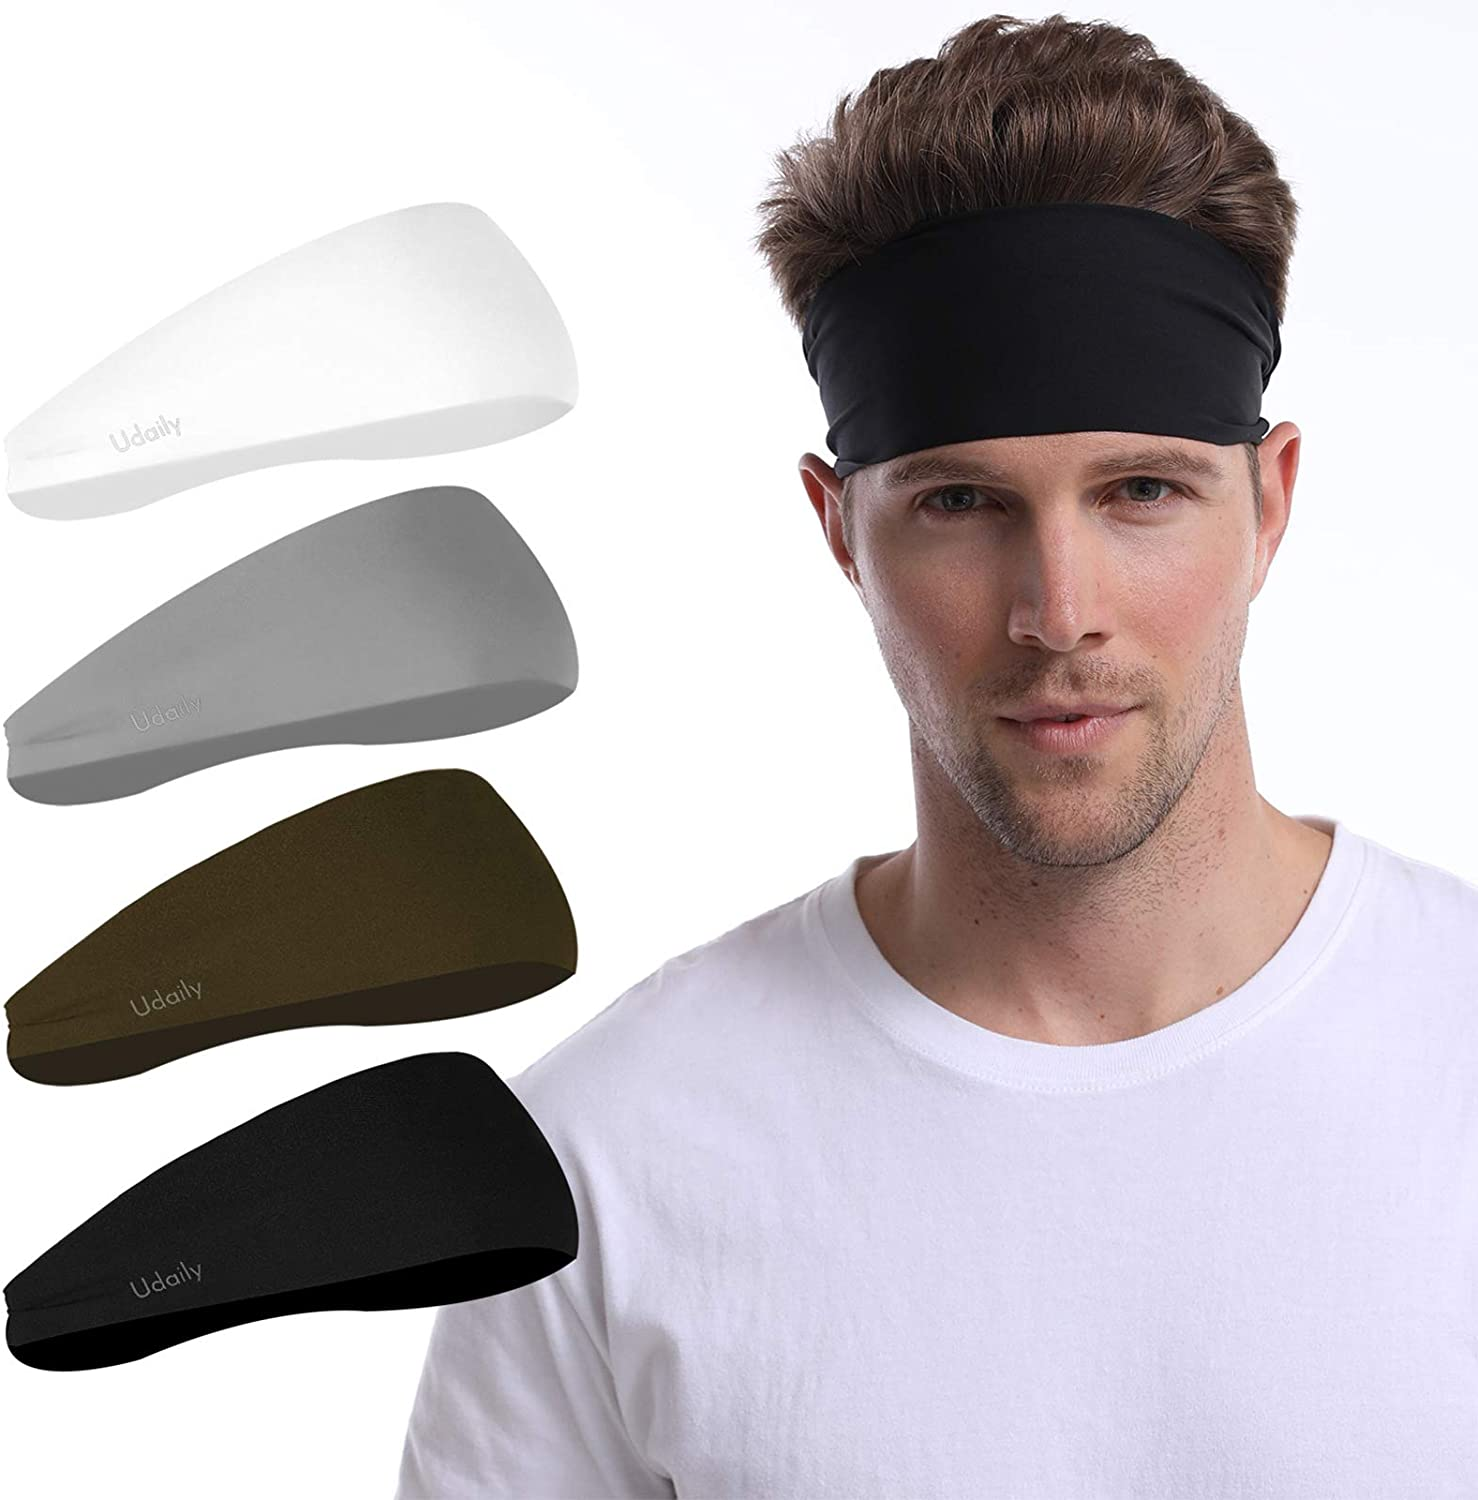 Udaily 4 Pack Mens Headband, Sports Headbands for Men and Women, Mens Sweatband for Workout, Running, Hiking, Yoga, Basketball, Cycling, Elastic Sweat Wicking, Non Slip, Helmet Friendly Hairband: Clothing